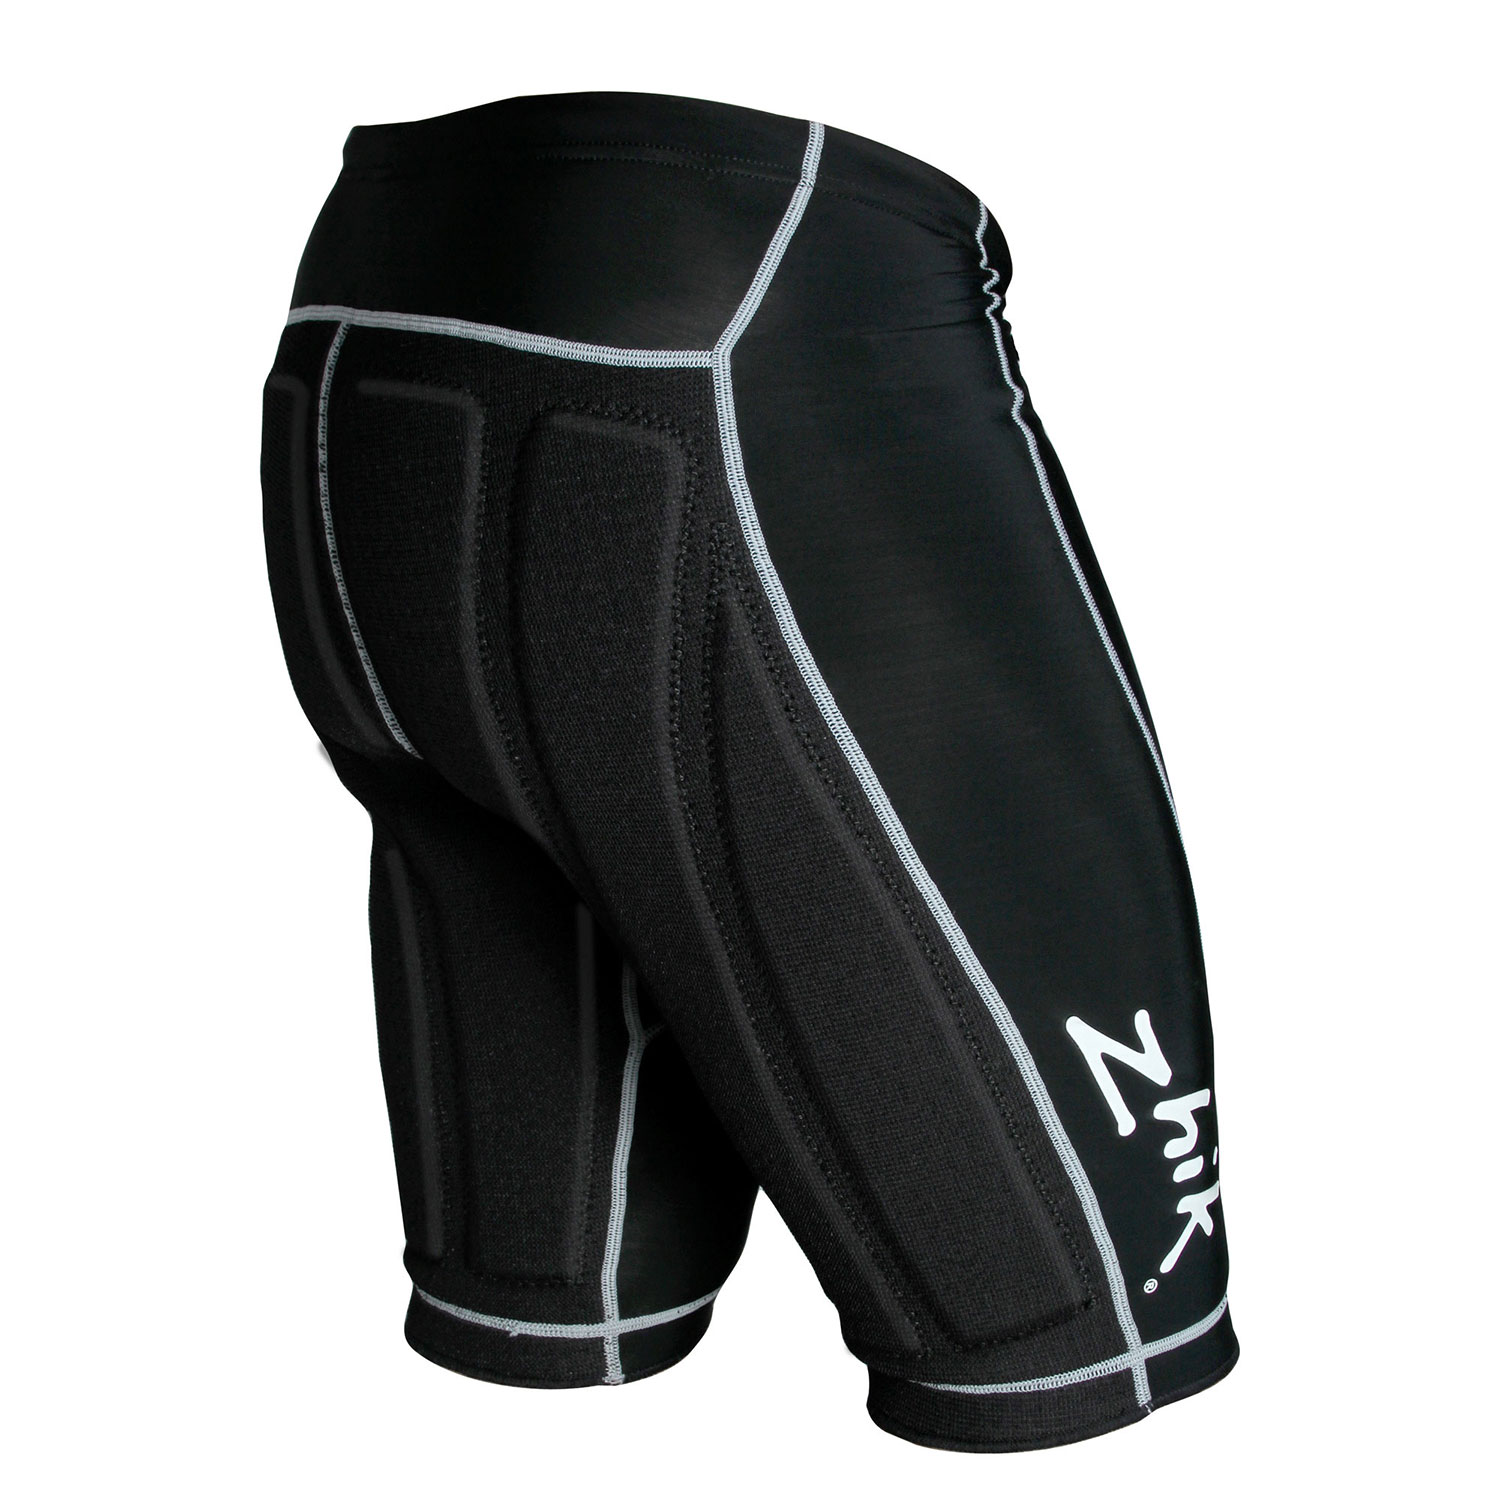 Shop hiking shorts from DICK'S Sporting Goods today. If you find a lower price on hiking shorts somewhere else, we'll match it with our Best Price Guarantee! Check out customer reviews on hiking shorts and save big on a variety of products. Plus, ScoreCard members earn points on every purchase.